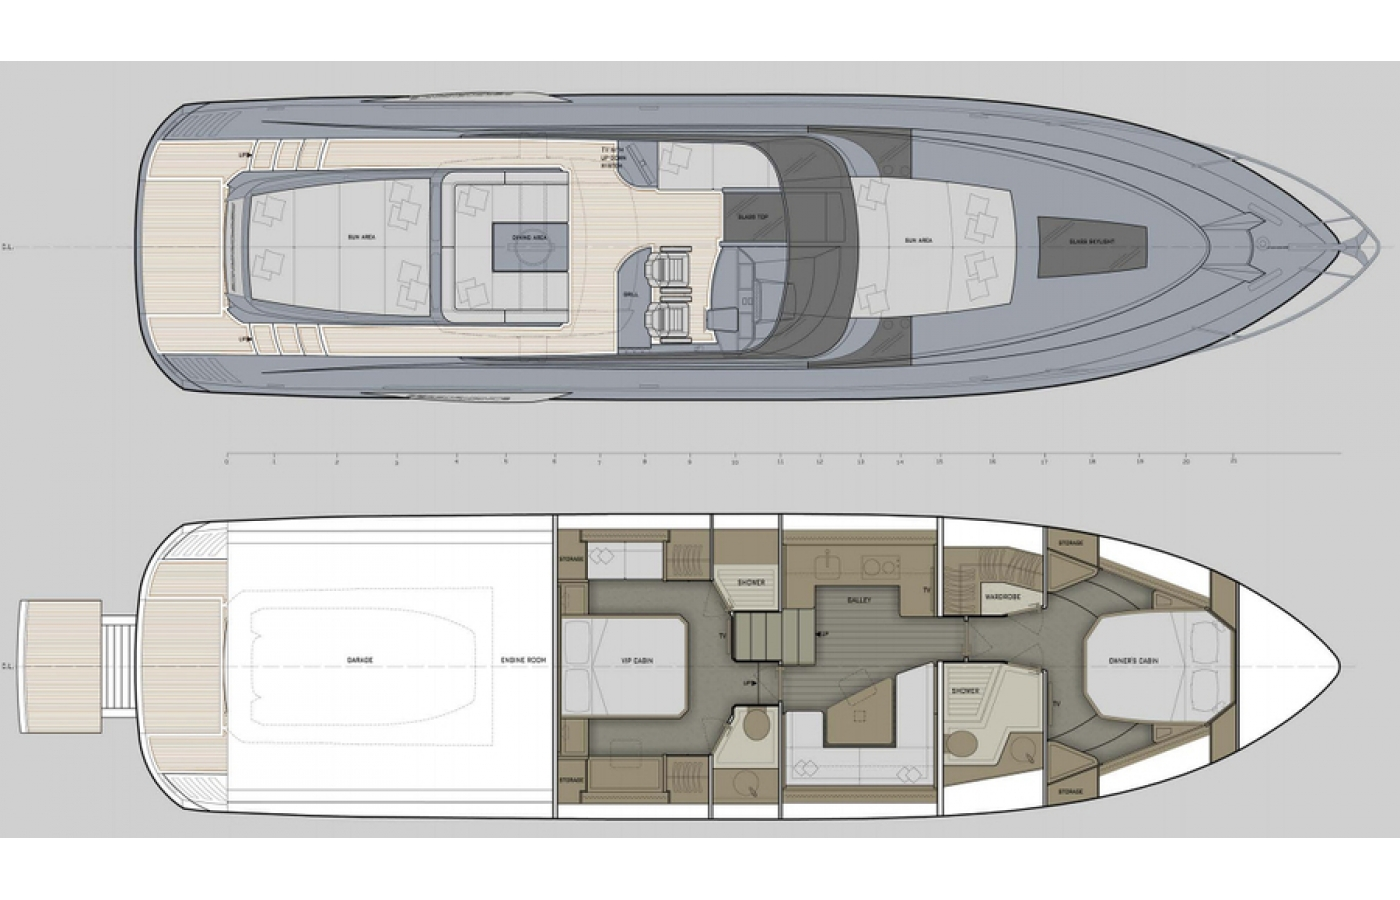 Layout of the 65' Ocean Sports Yacht